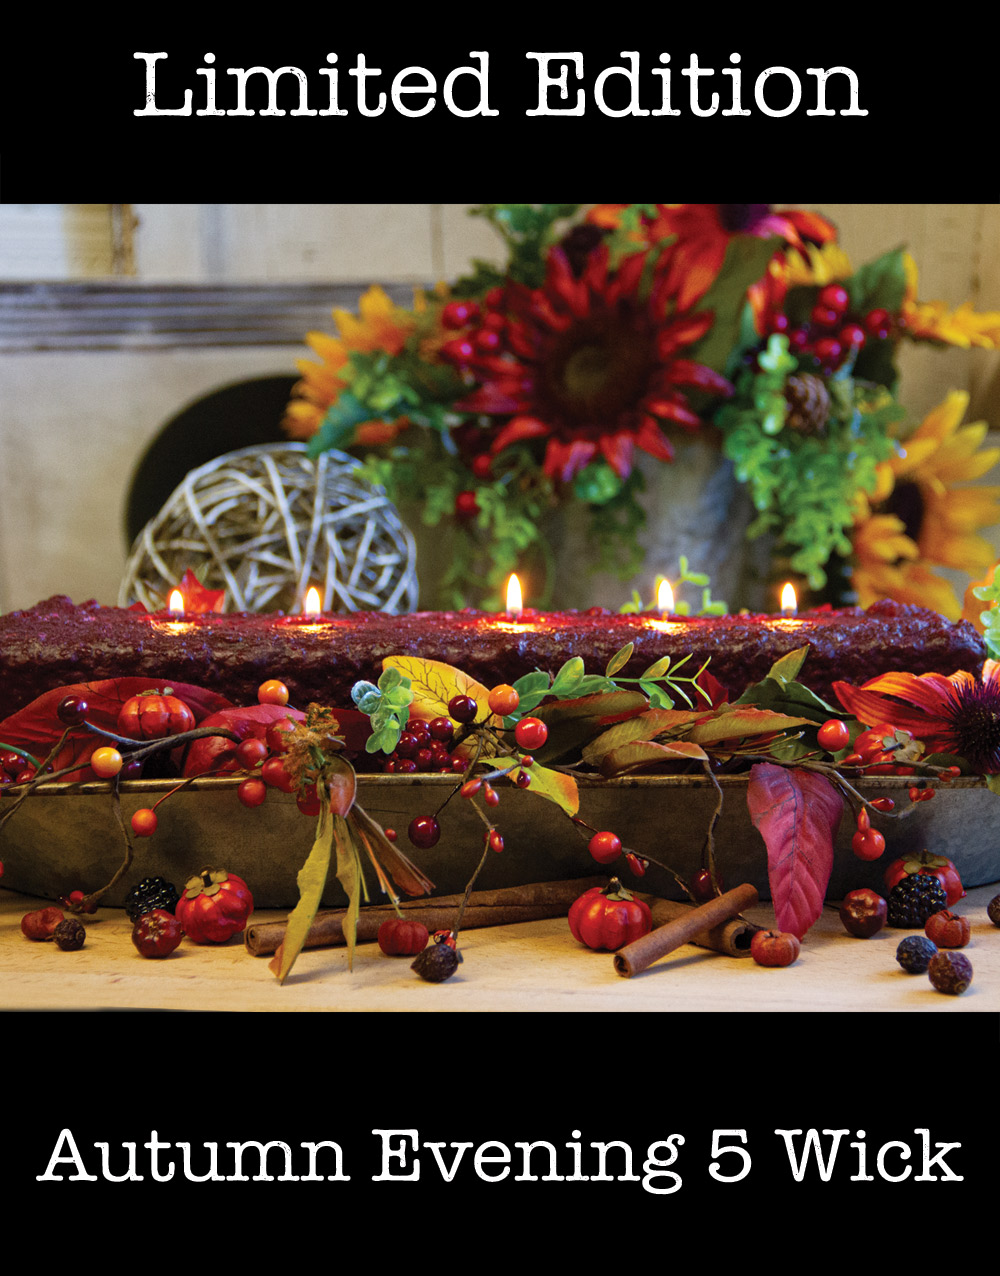 Holiday Edition 5 Wick Loaf Candle – Autumn Evening